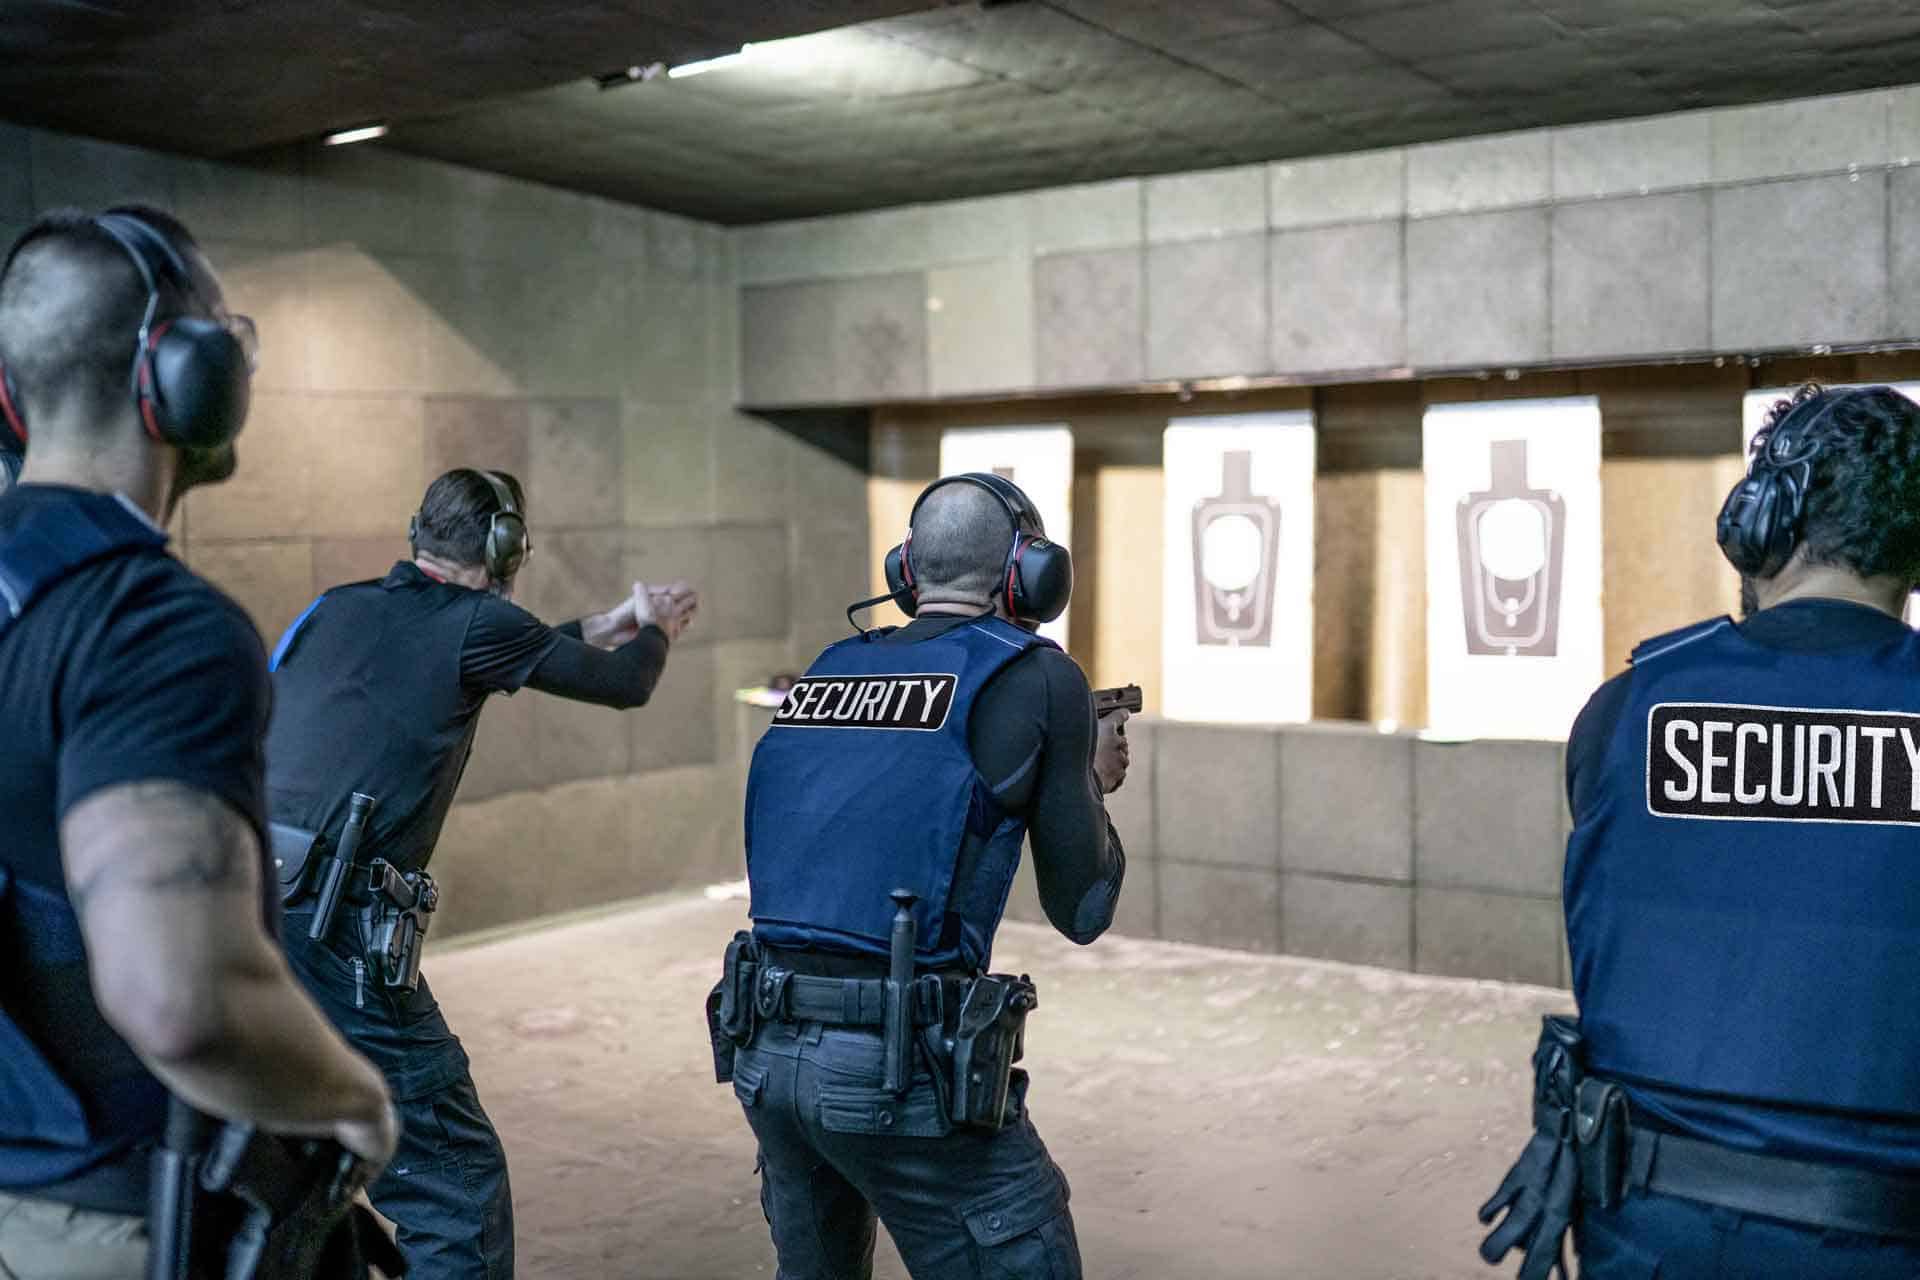 Security Training in NYC is Vital to Protect Life and Property International Security Services, Inc.